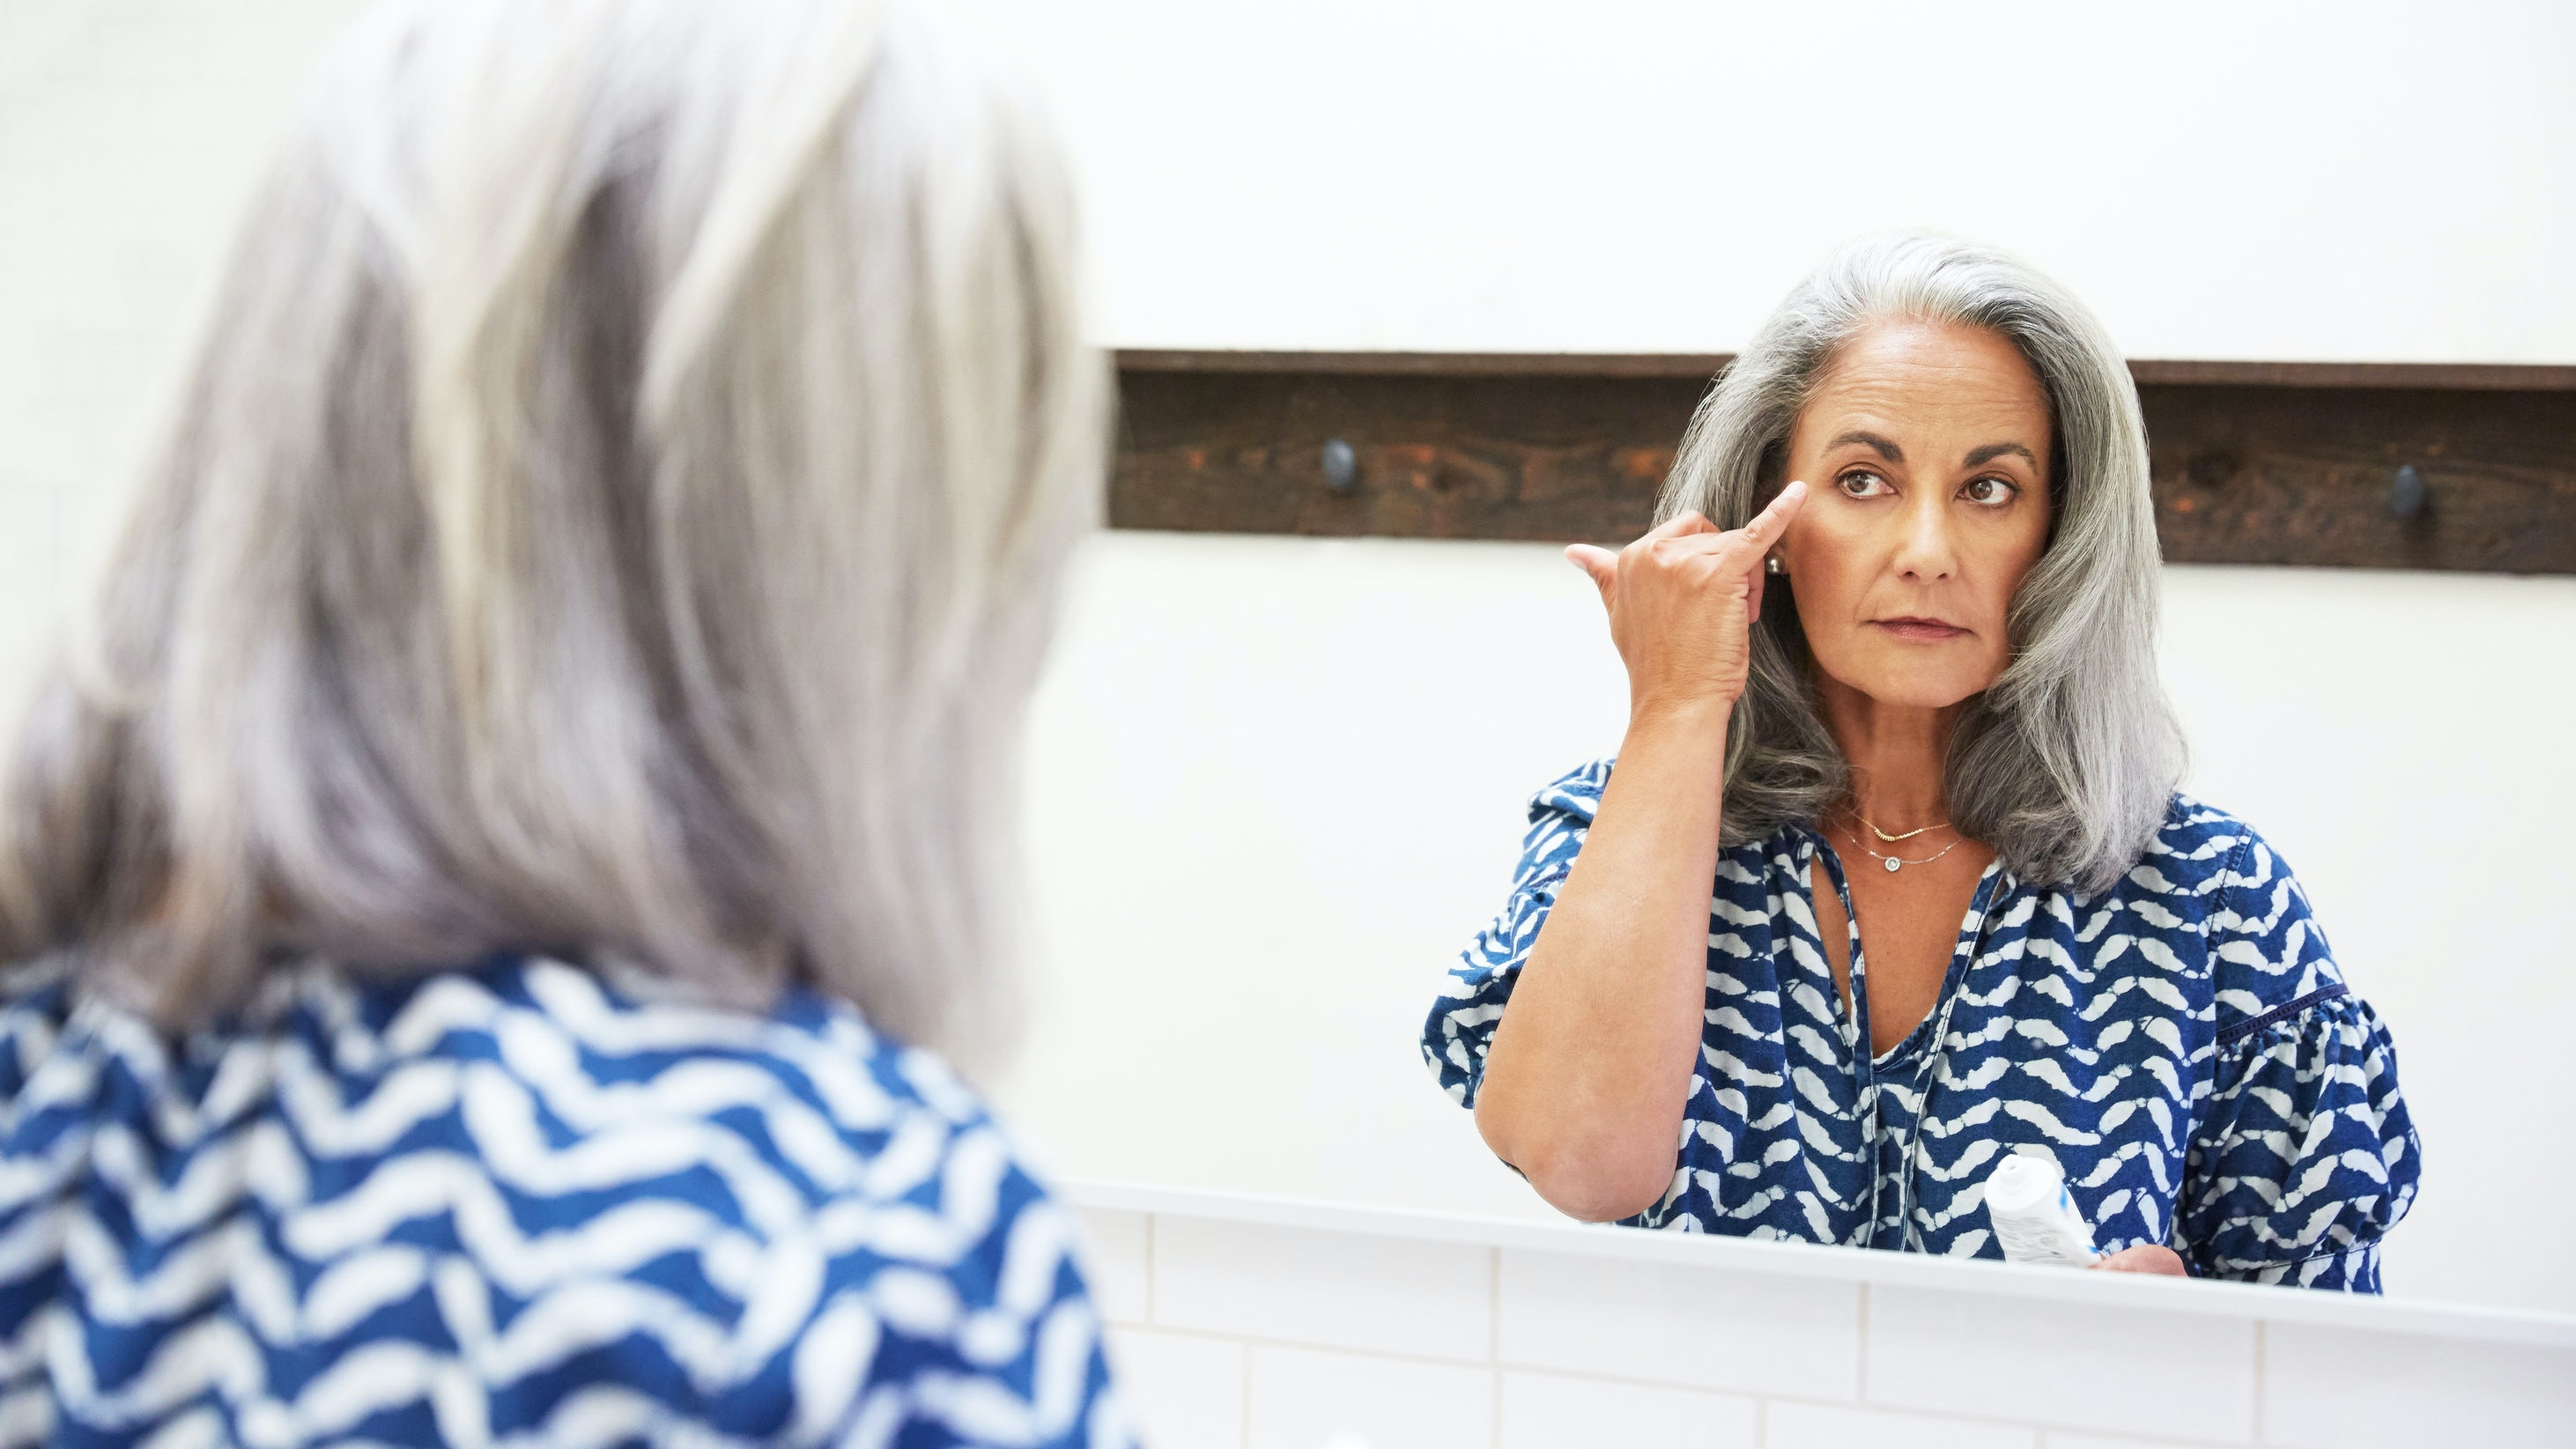 How Much Do You Really Know About Injectable Wrinkle Reducers? Take This Quiz to Find Out!